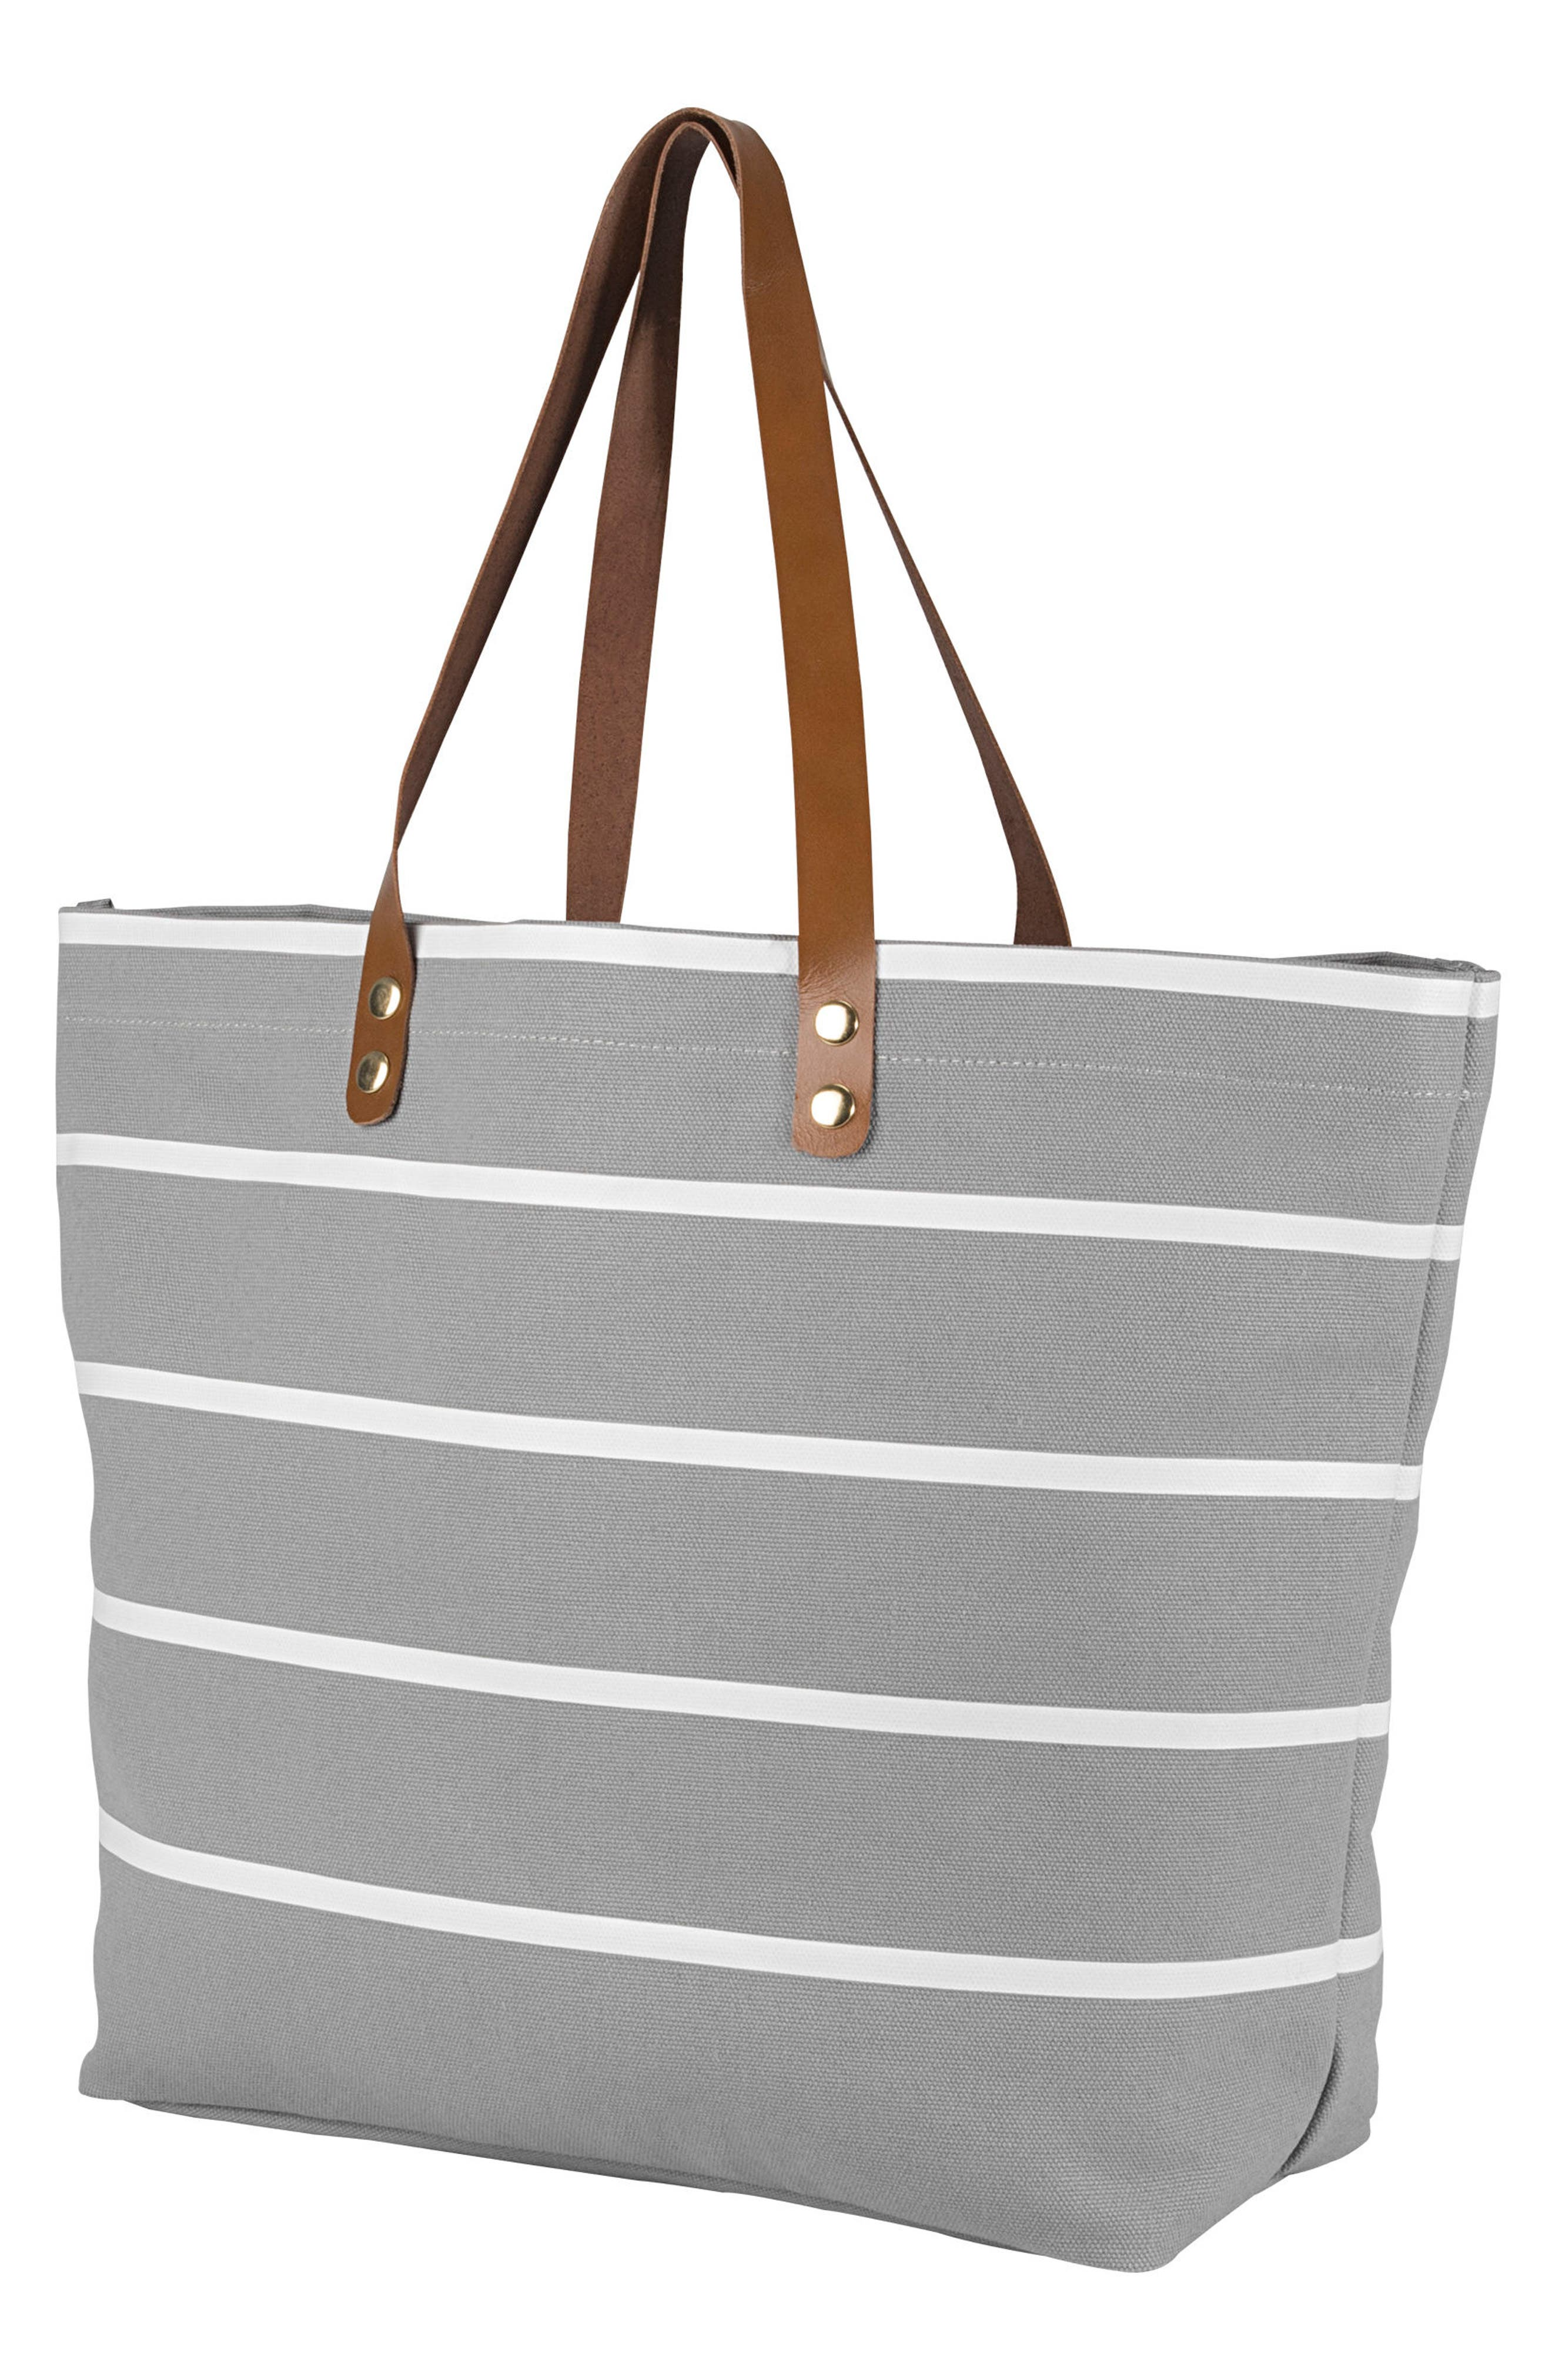 CATHY'S CONCEPTS Monogram Large Canvas Tote, Main, color, GREY